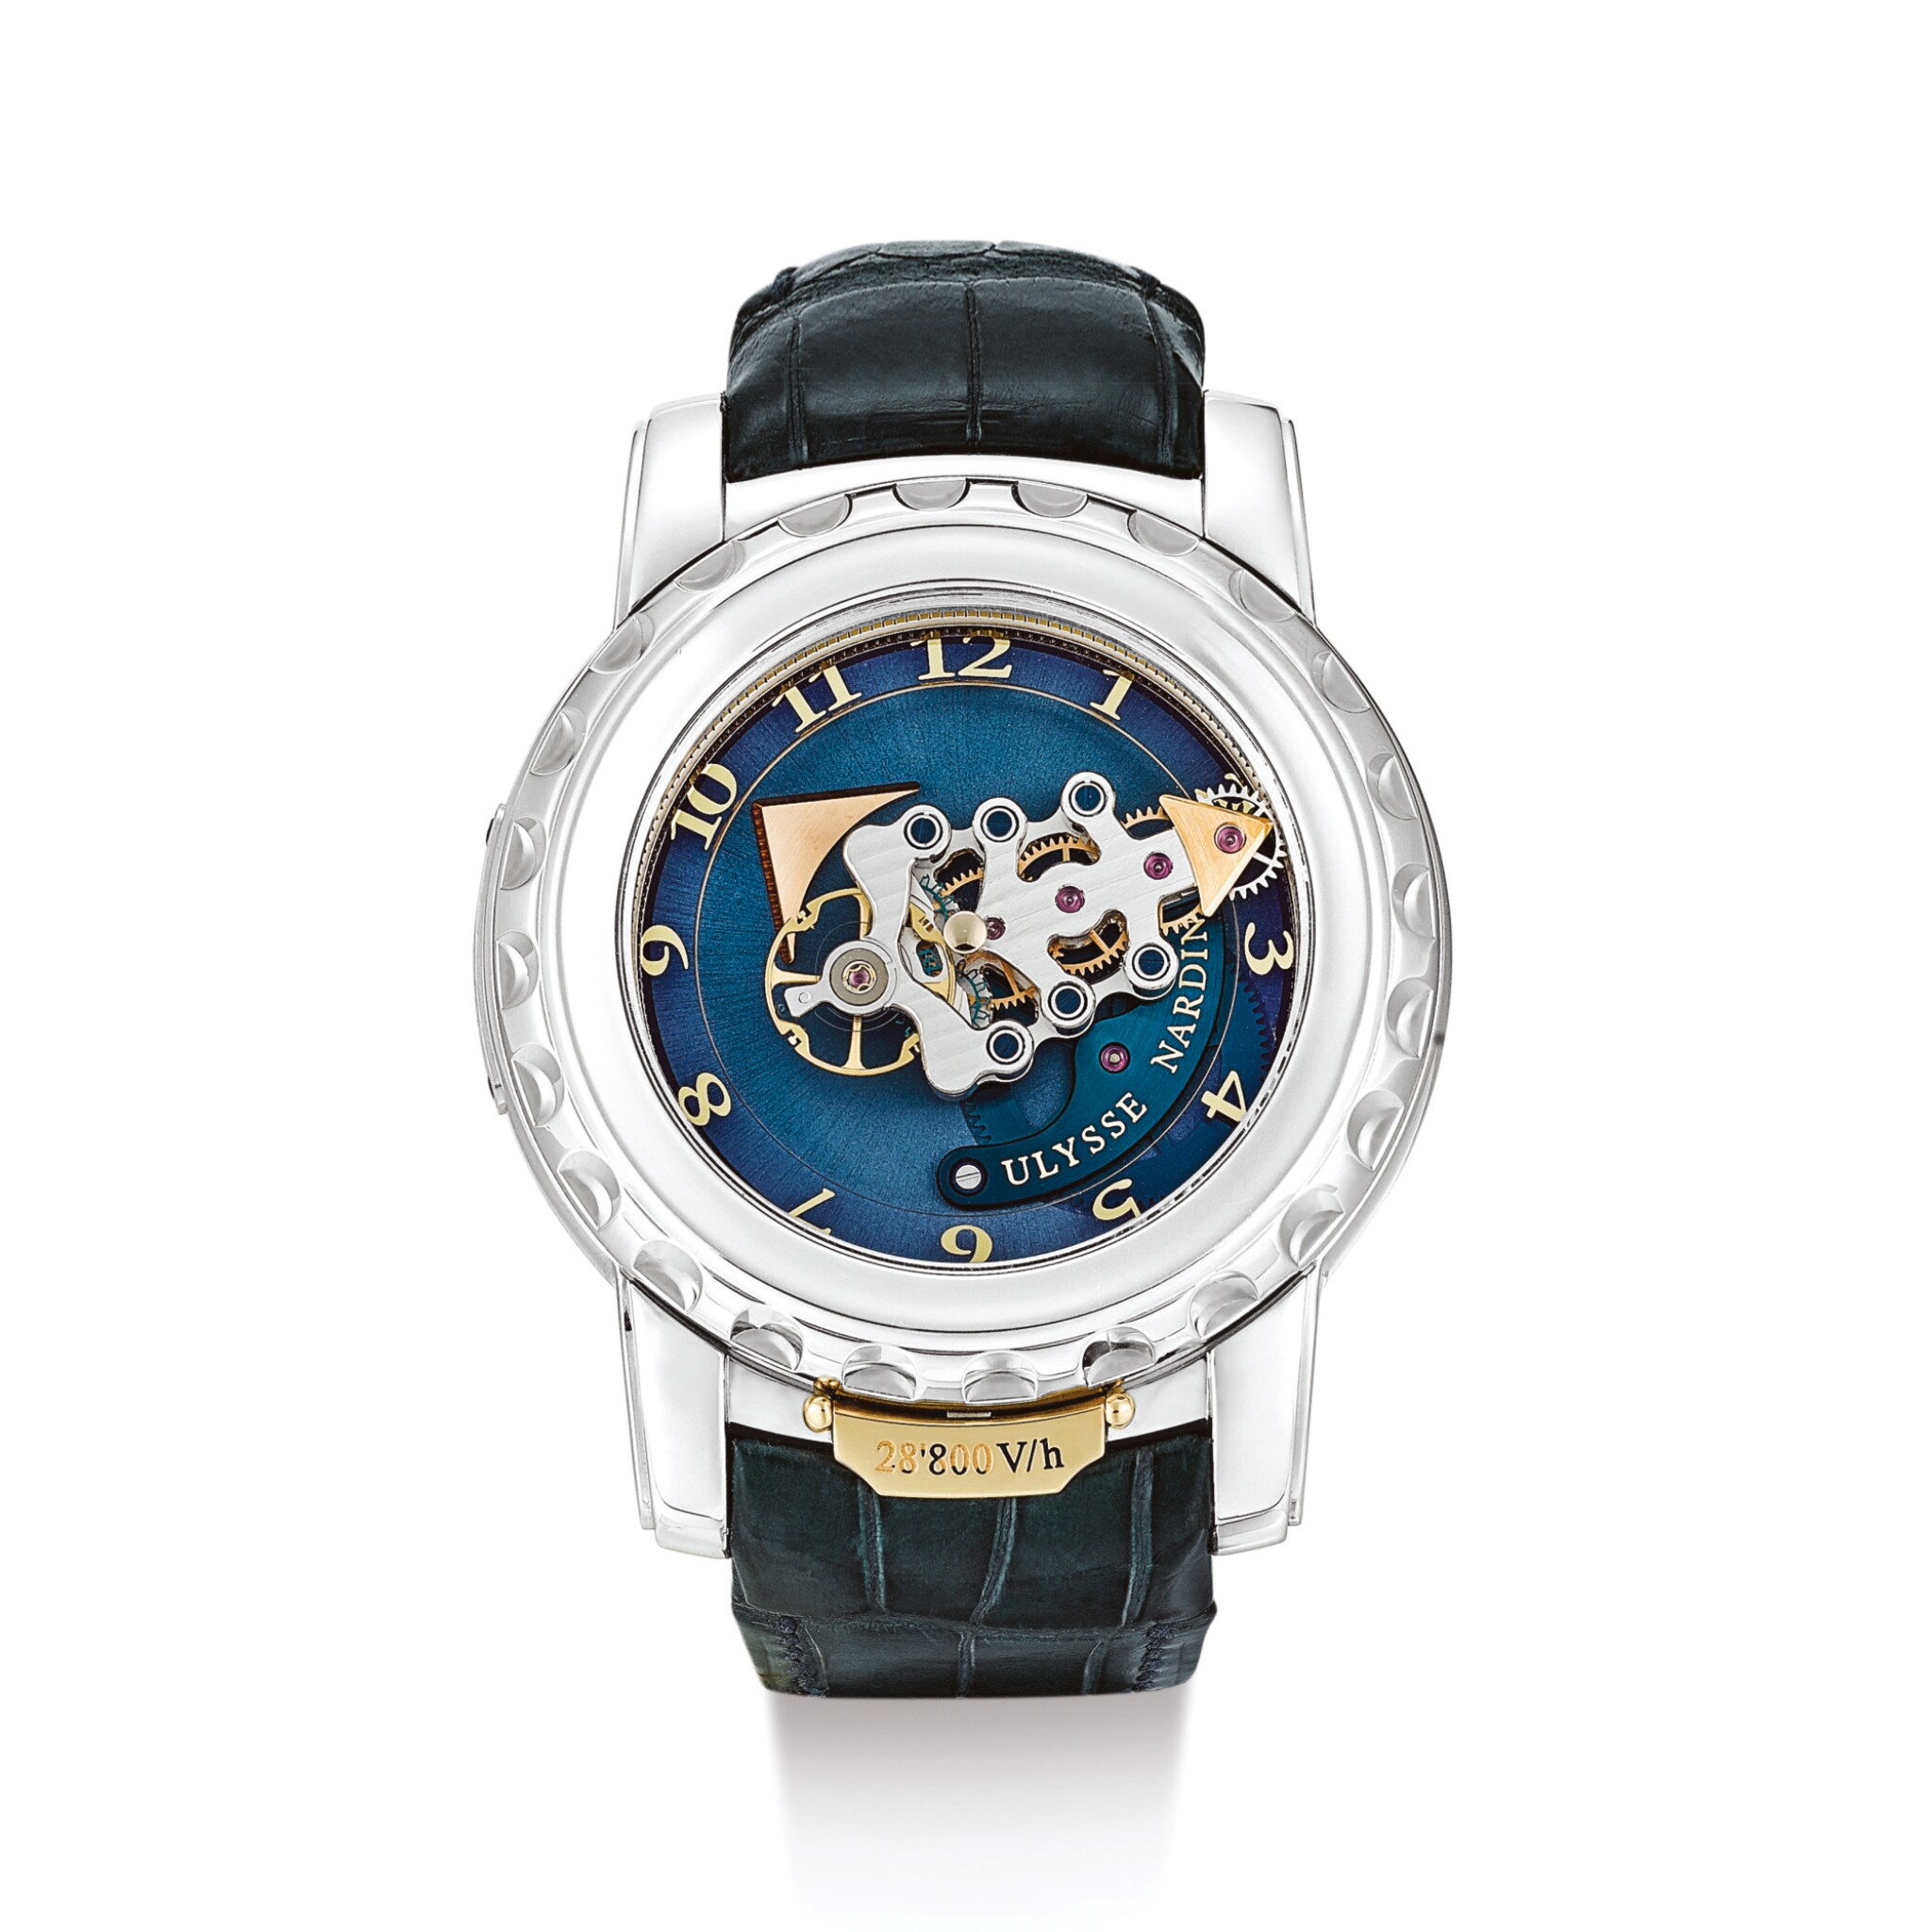 View full screen - View 1 of Lot 2014. ULYSSE NARDIN  |  FREAK, REFERENCE 020-88  A WHITE GOLD CARROUSEL TOURBILLON WRISTWATCH WITH DUAL DIRECT ESCAPEMENT, CIRCA 2007 | 雅典 | .